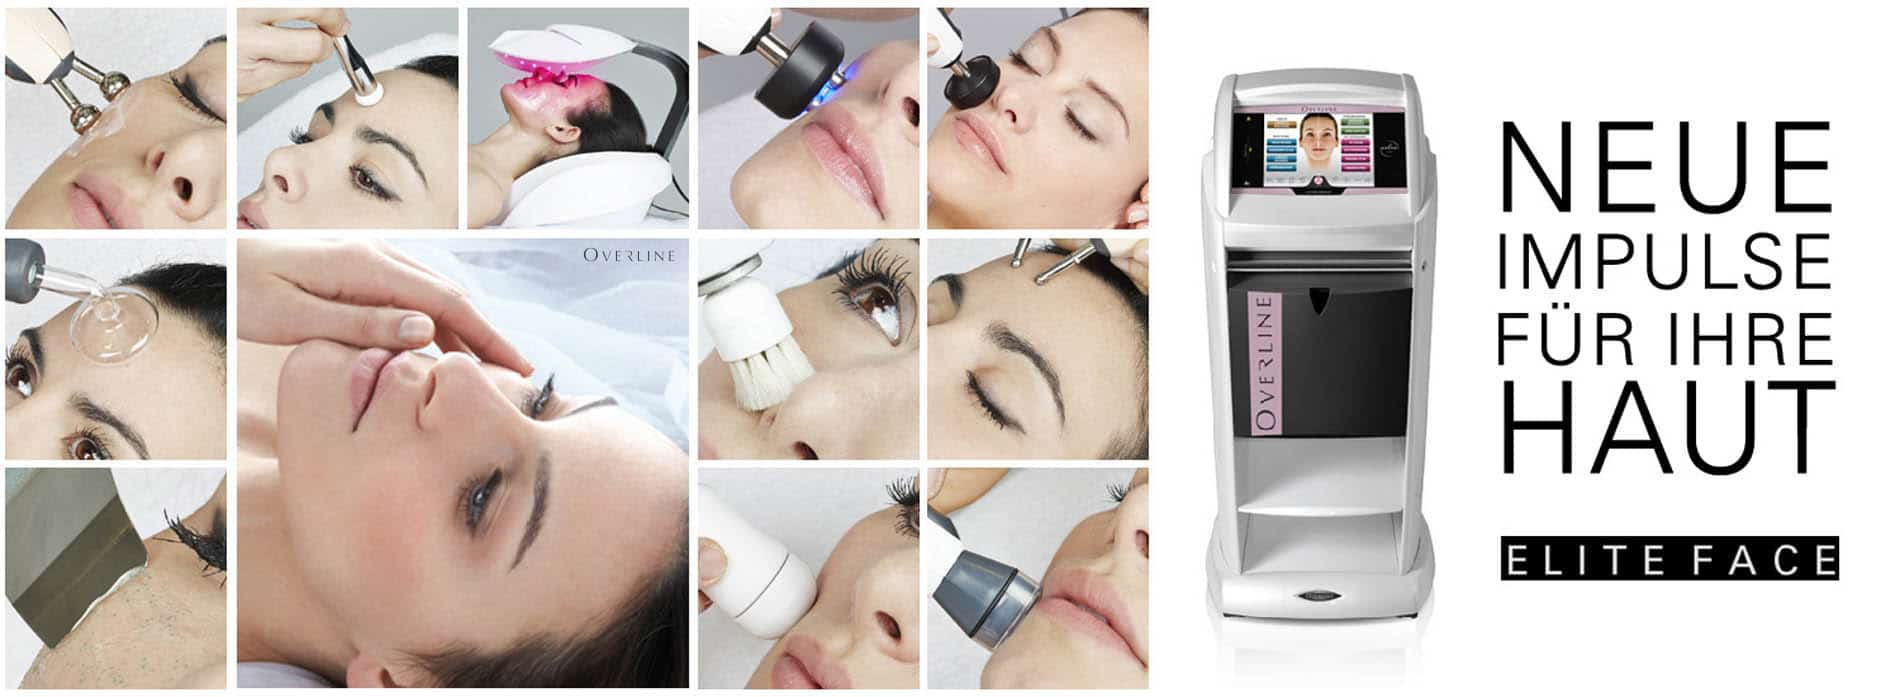 Anti Aging Multifunktionsgerät Elite Face, Radiofrequenz, Dermabrasion